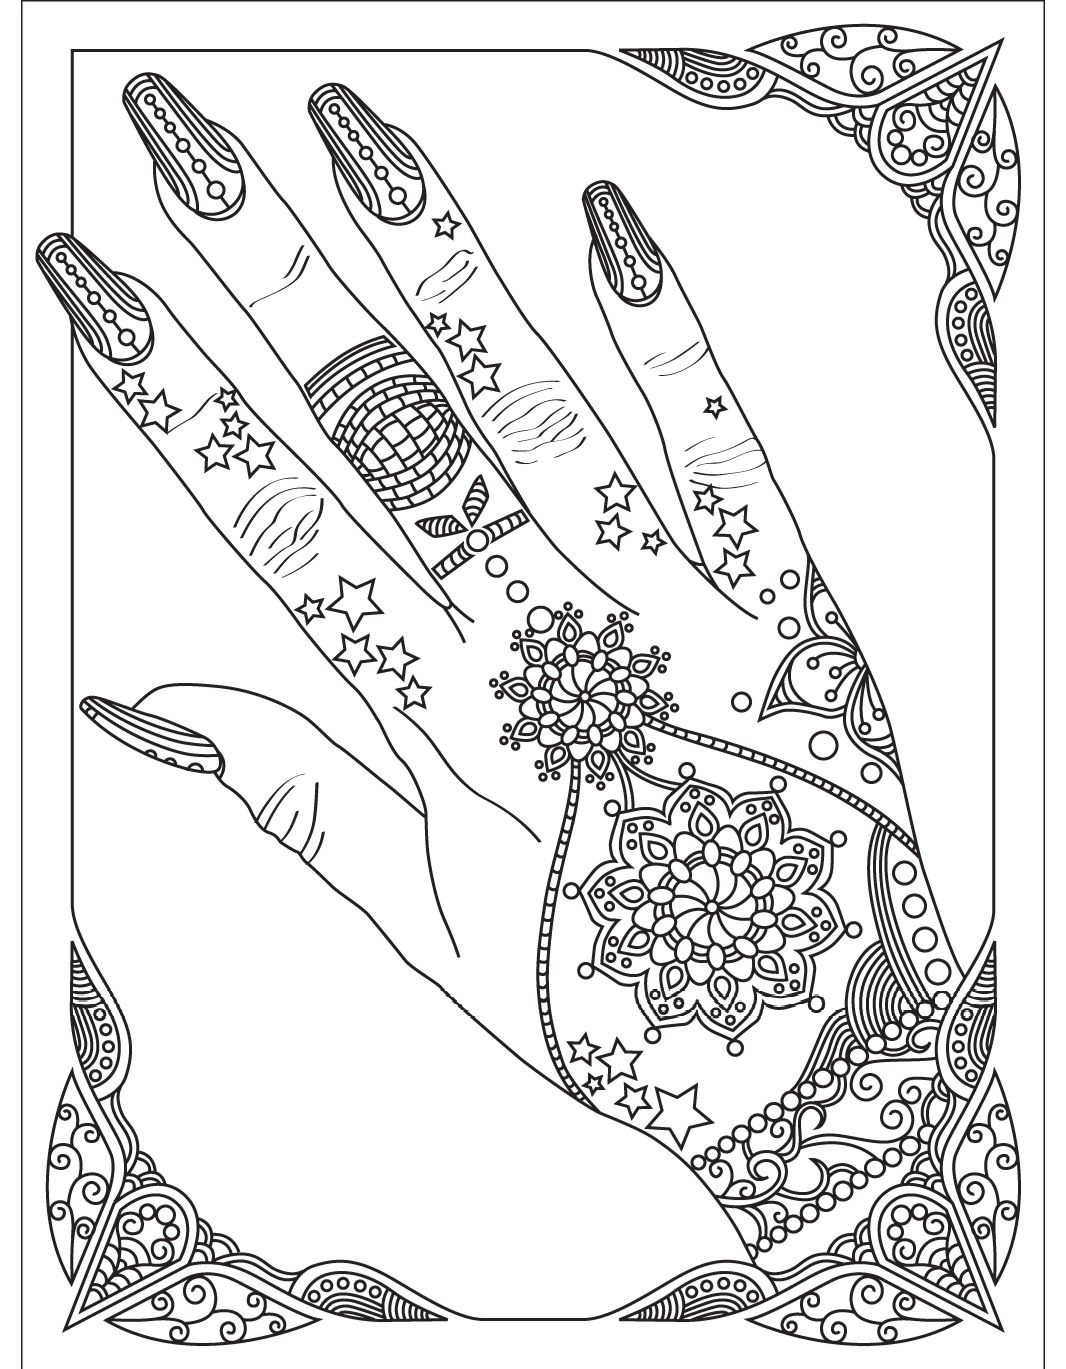 Nails | Colorish: coloring book app for adults by GoodSoftTech ...